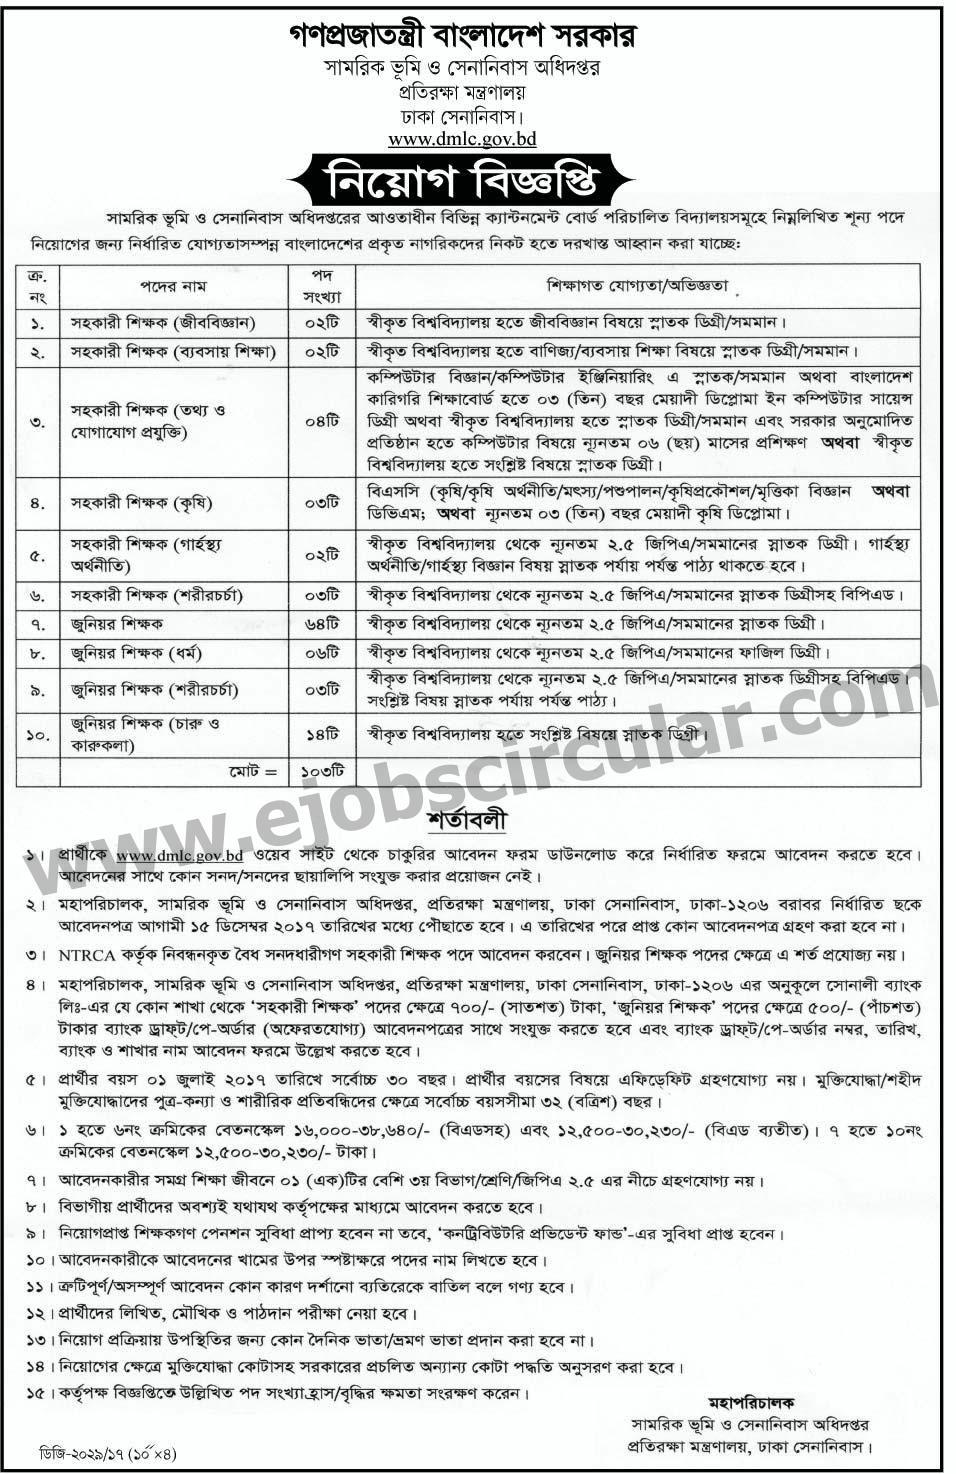 Department of Military Lands and Cantonment DMLC Job Circular 2017